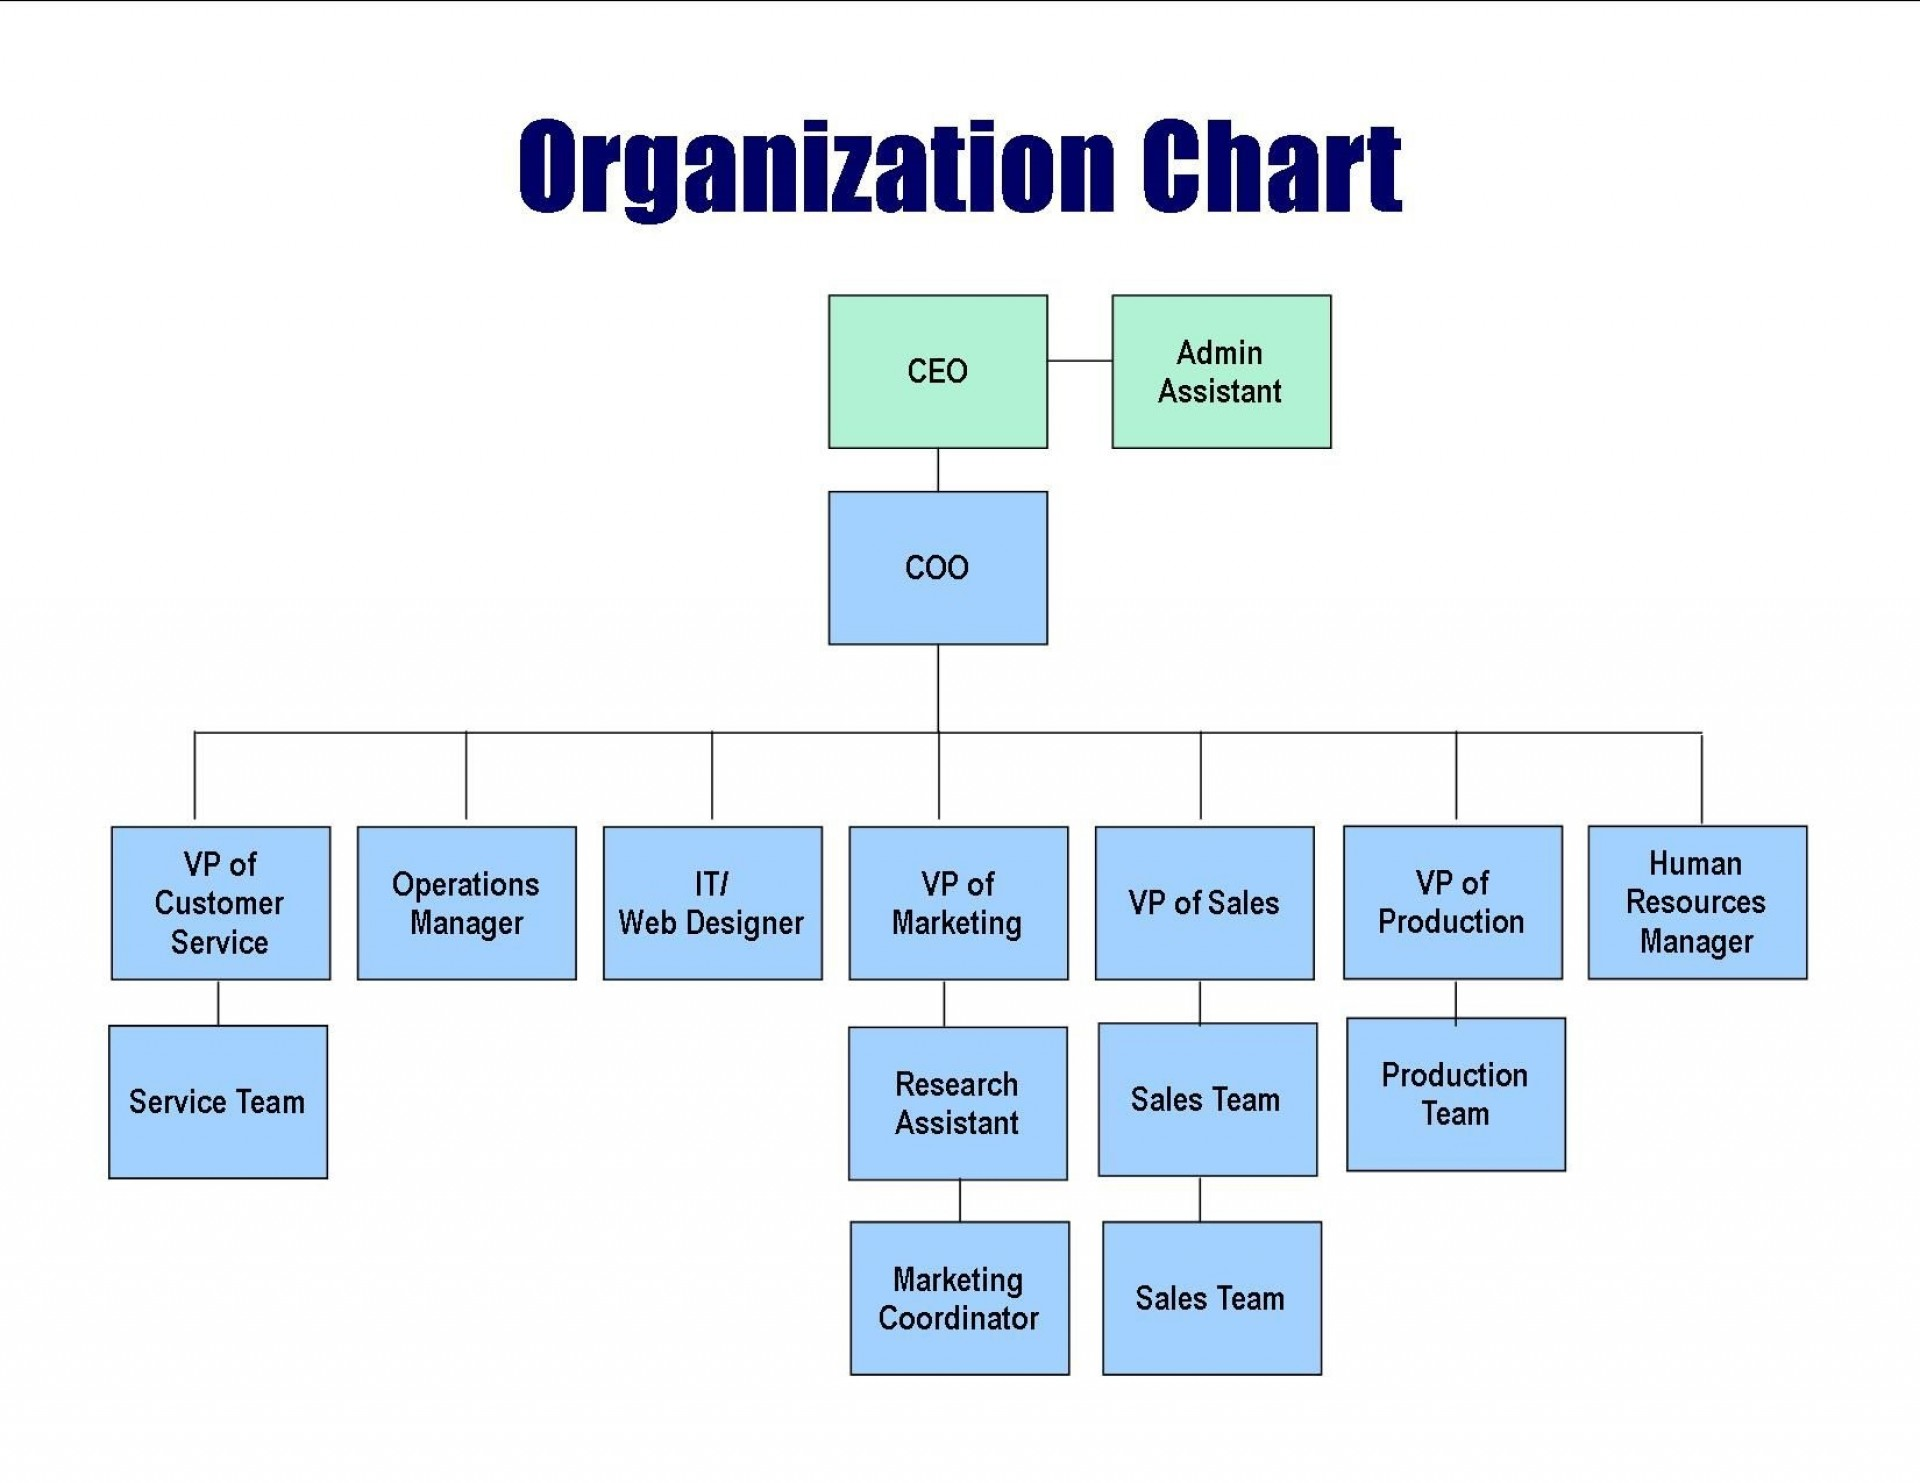 Microsoft Organizational Chart Template from www.addictionary.org